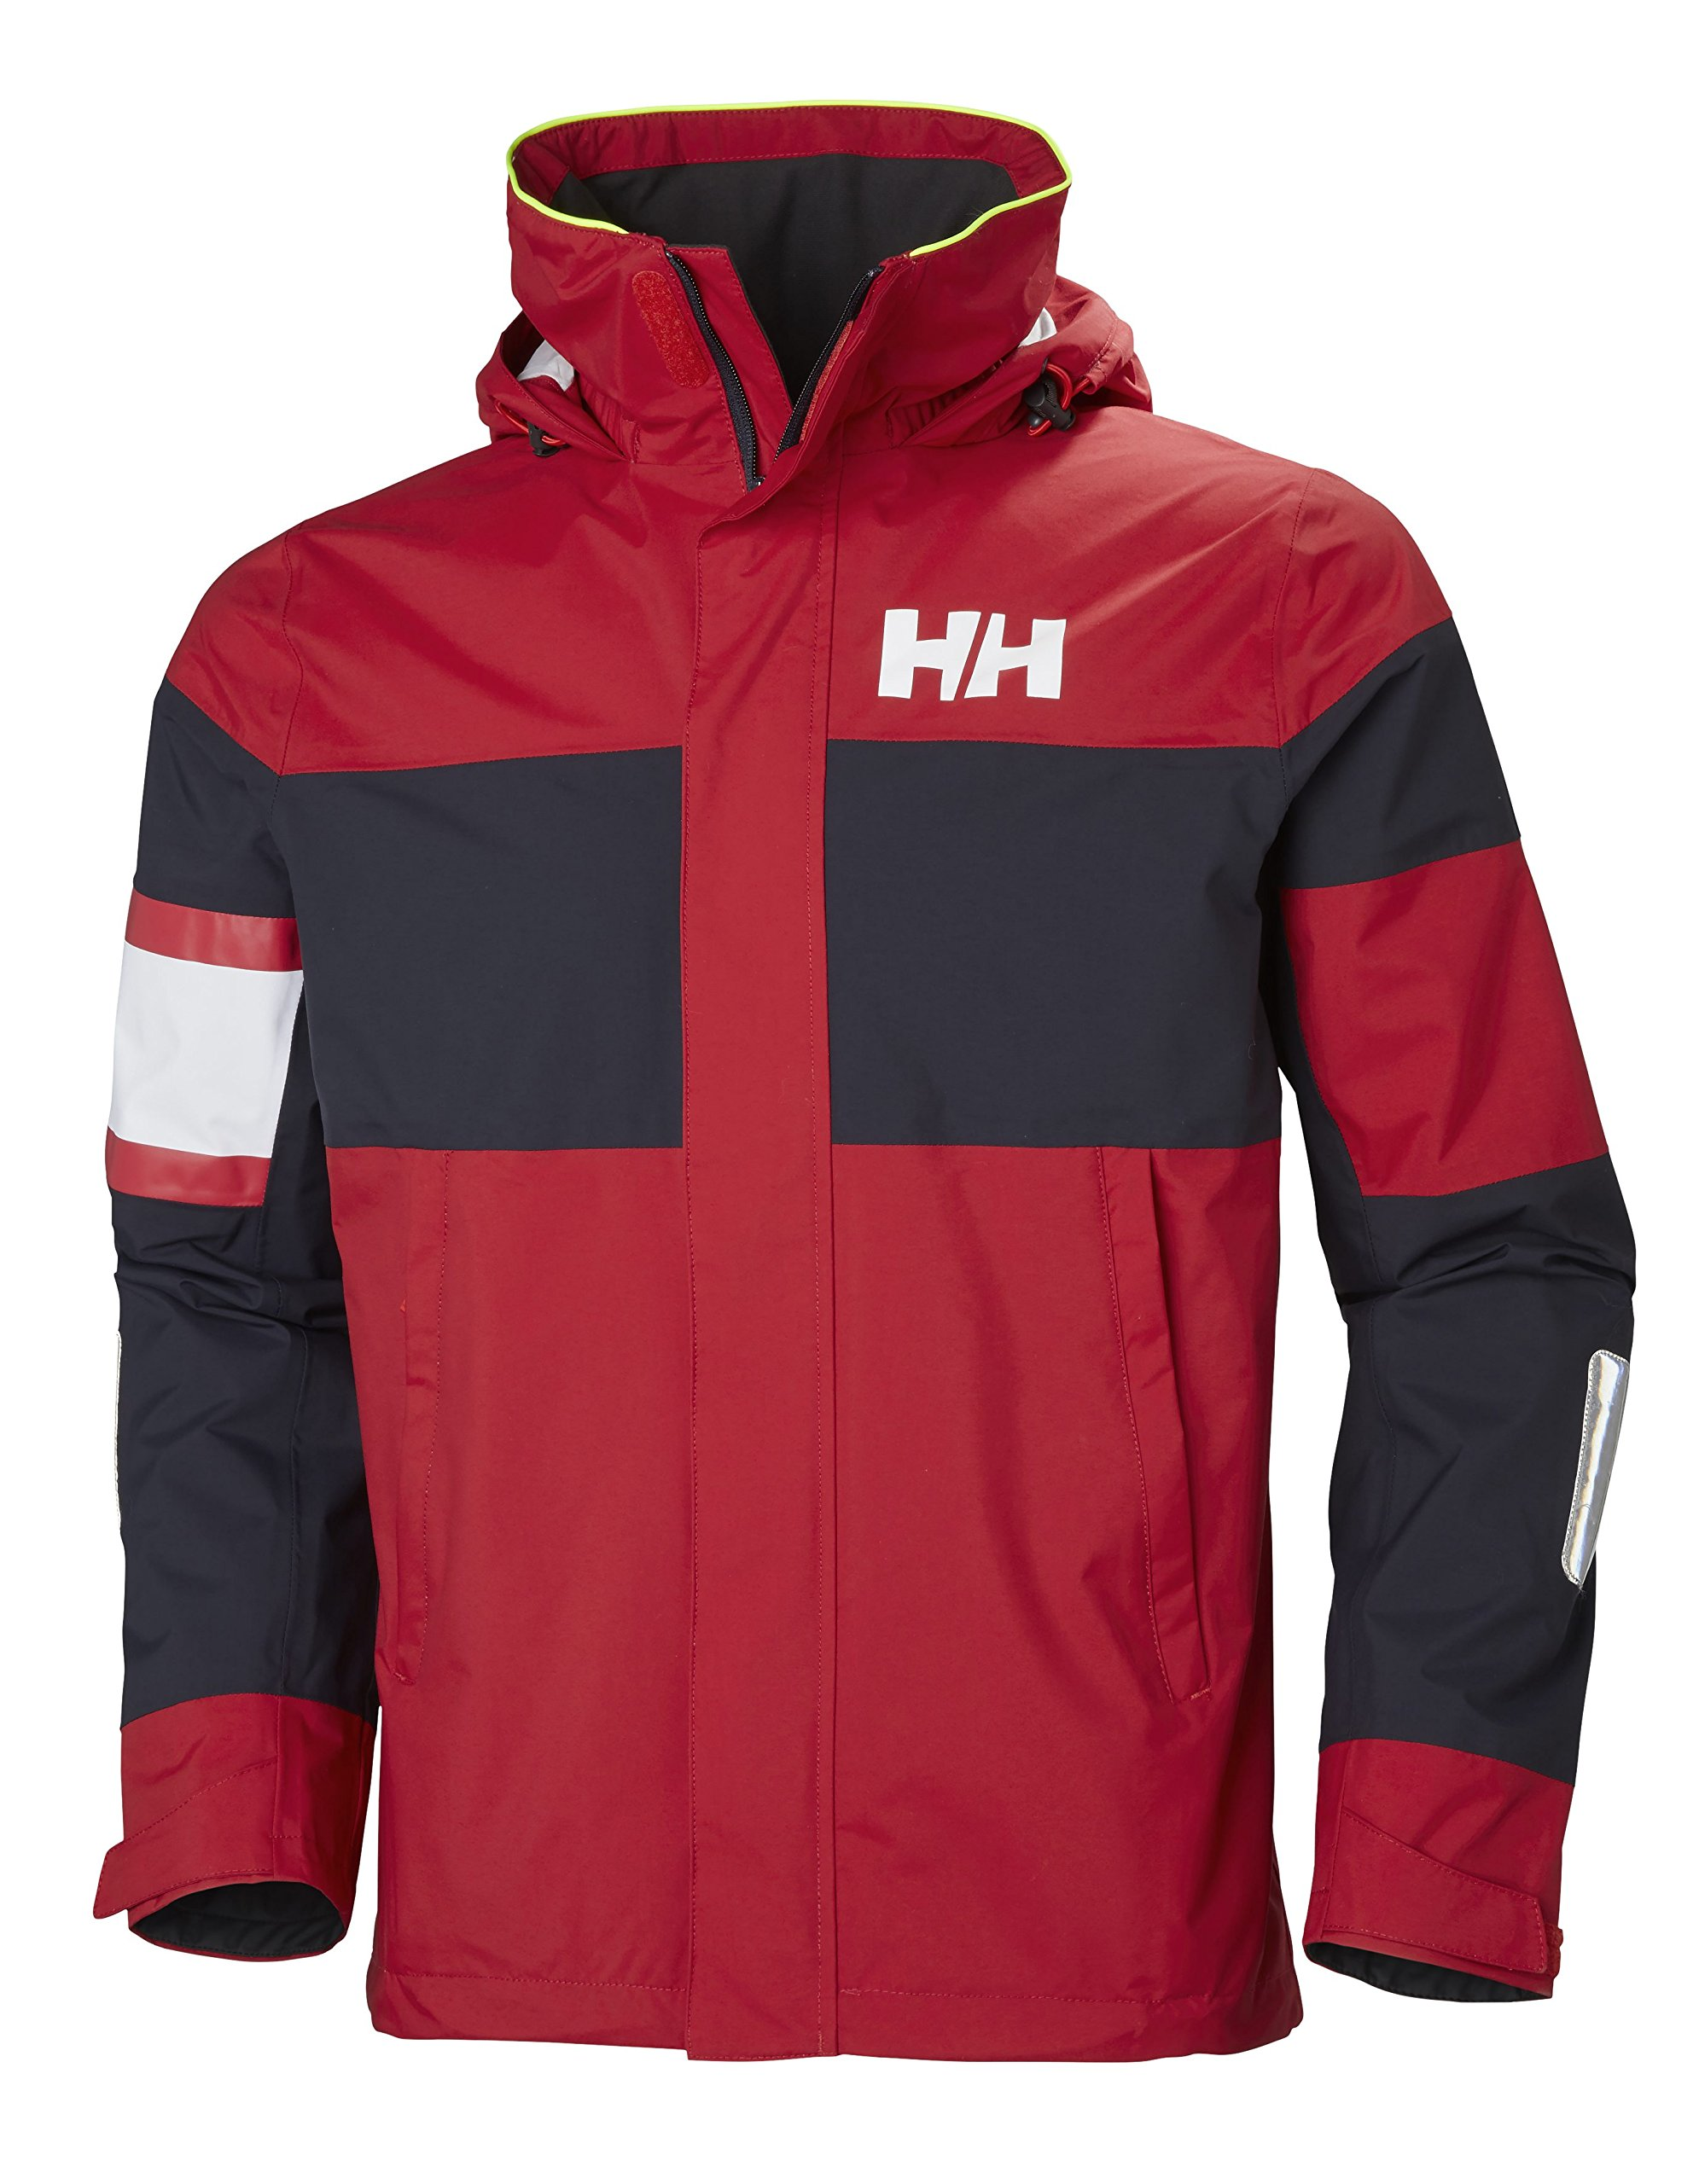 81YTT652 GL - Helly Hansen Waterproof Salt Light Sailing Jacket